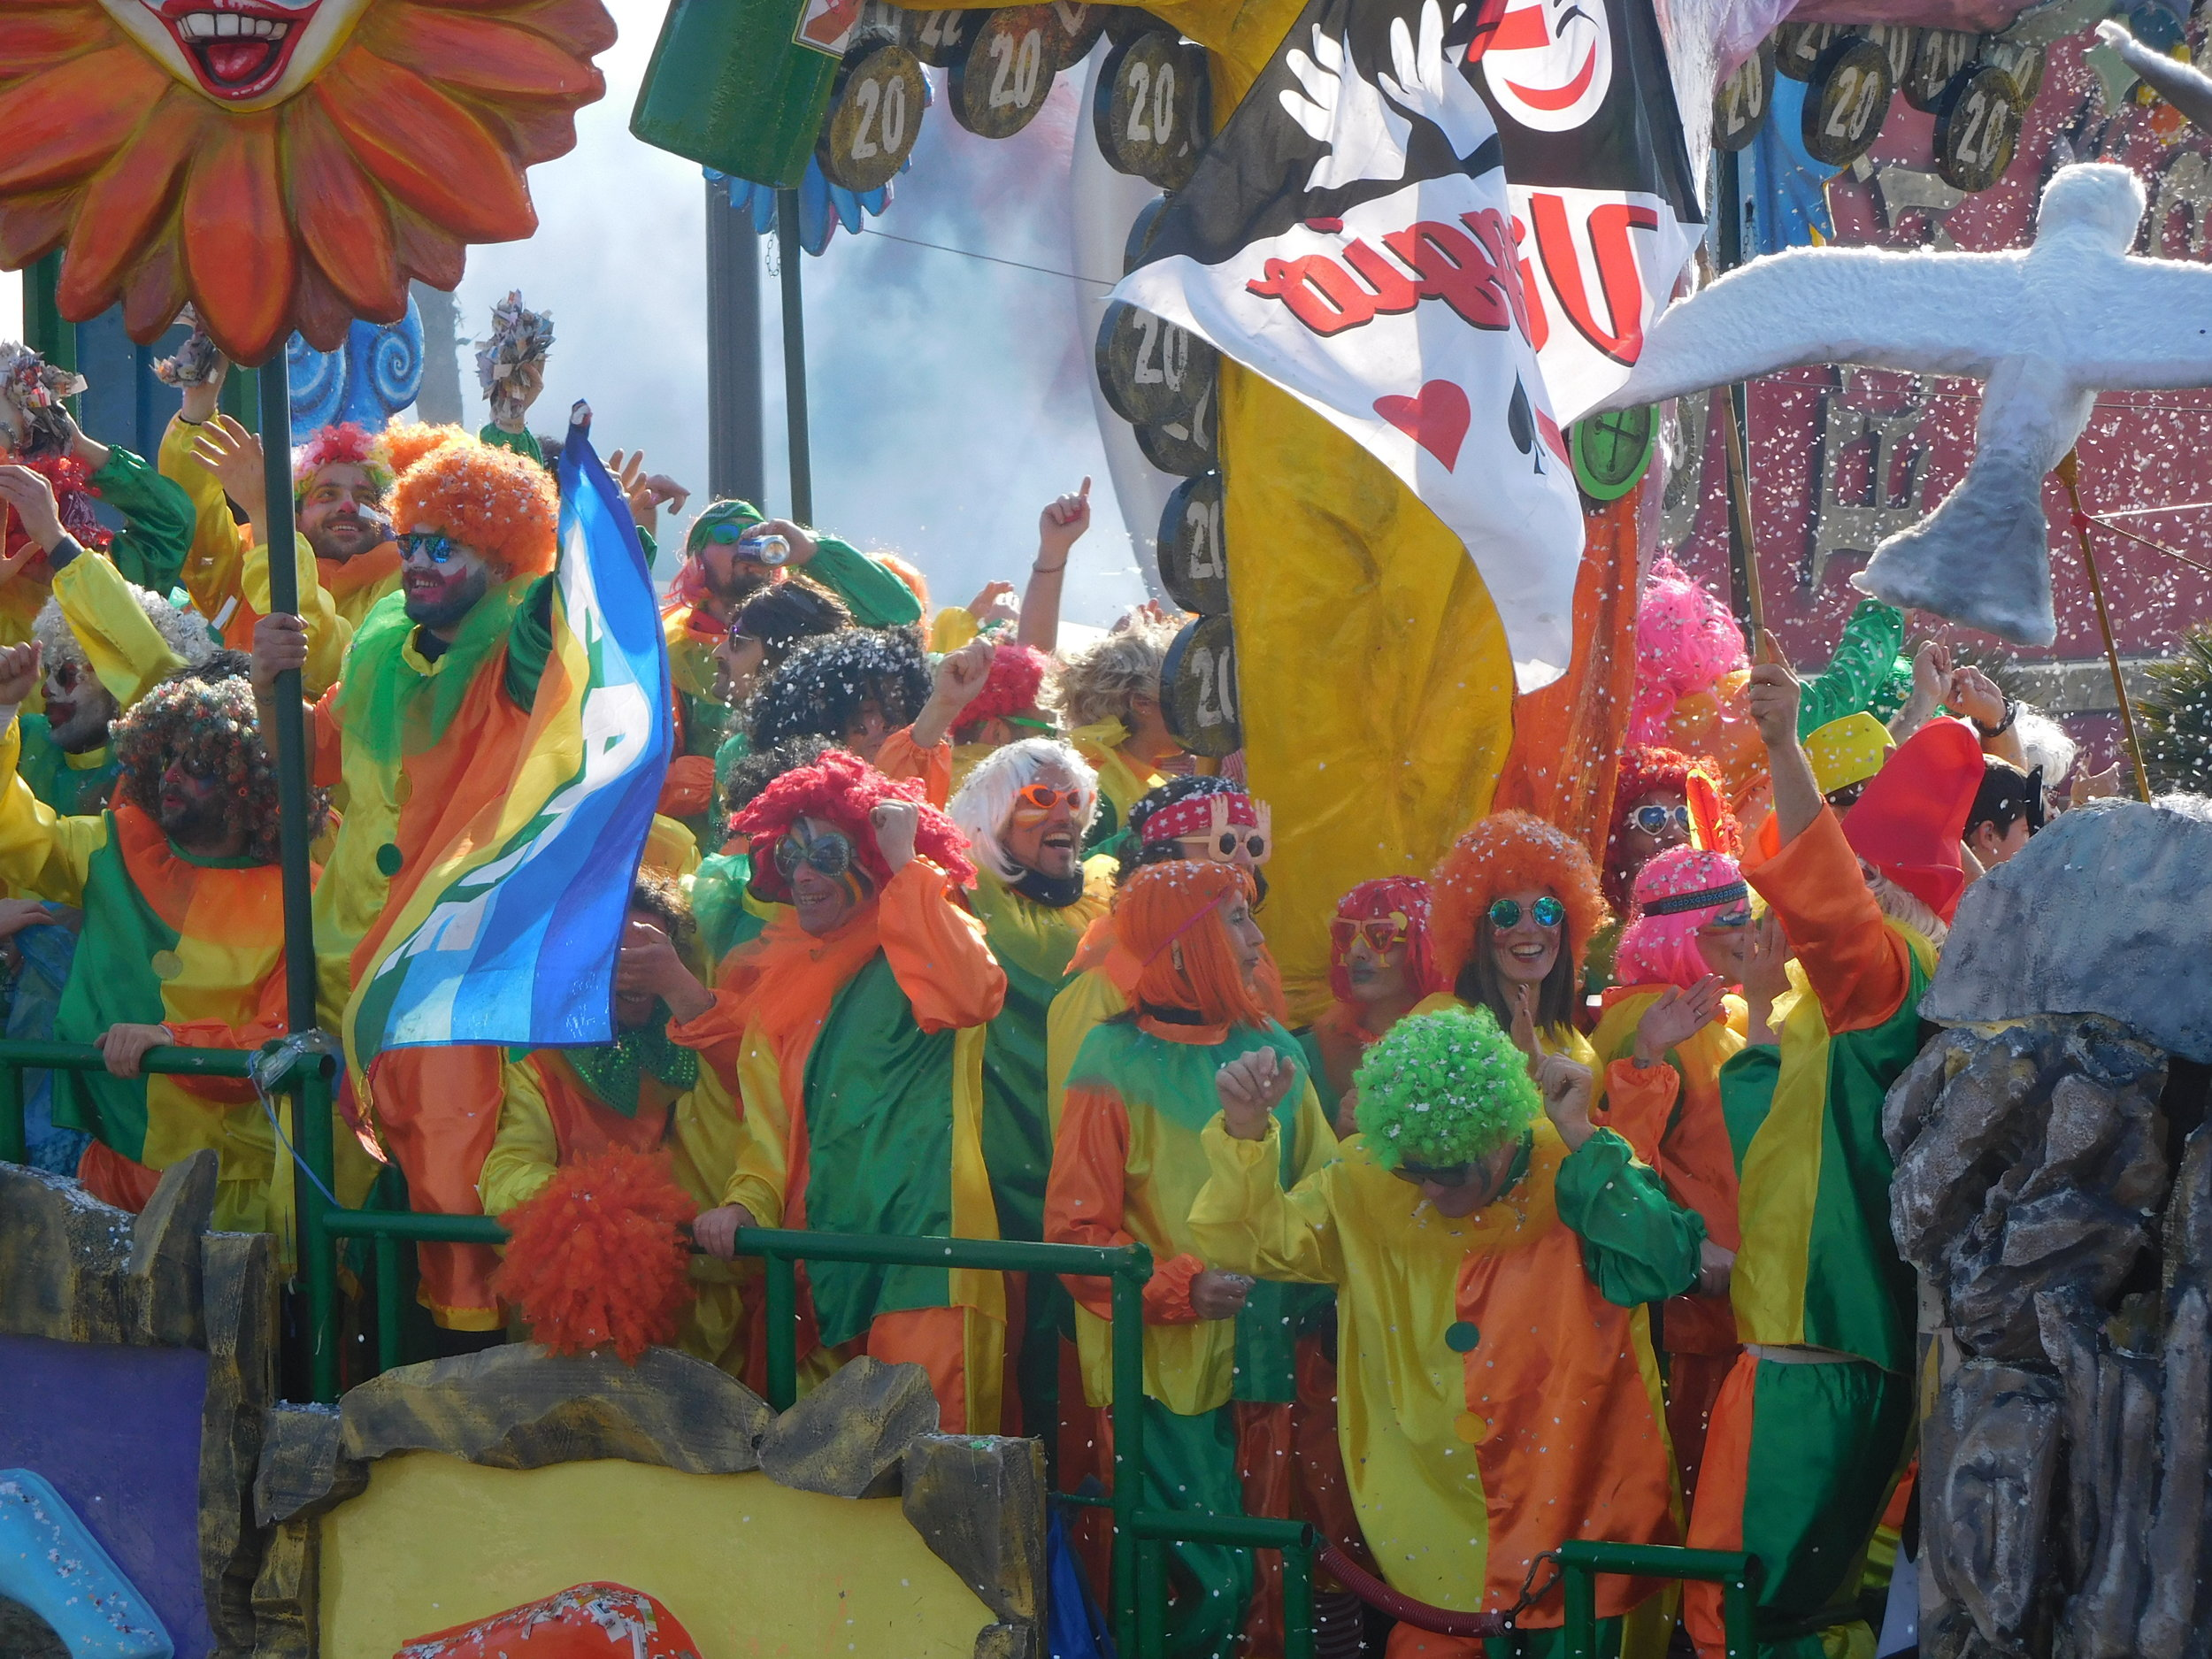 A rainbow float full of colorful clowns